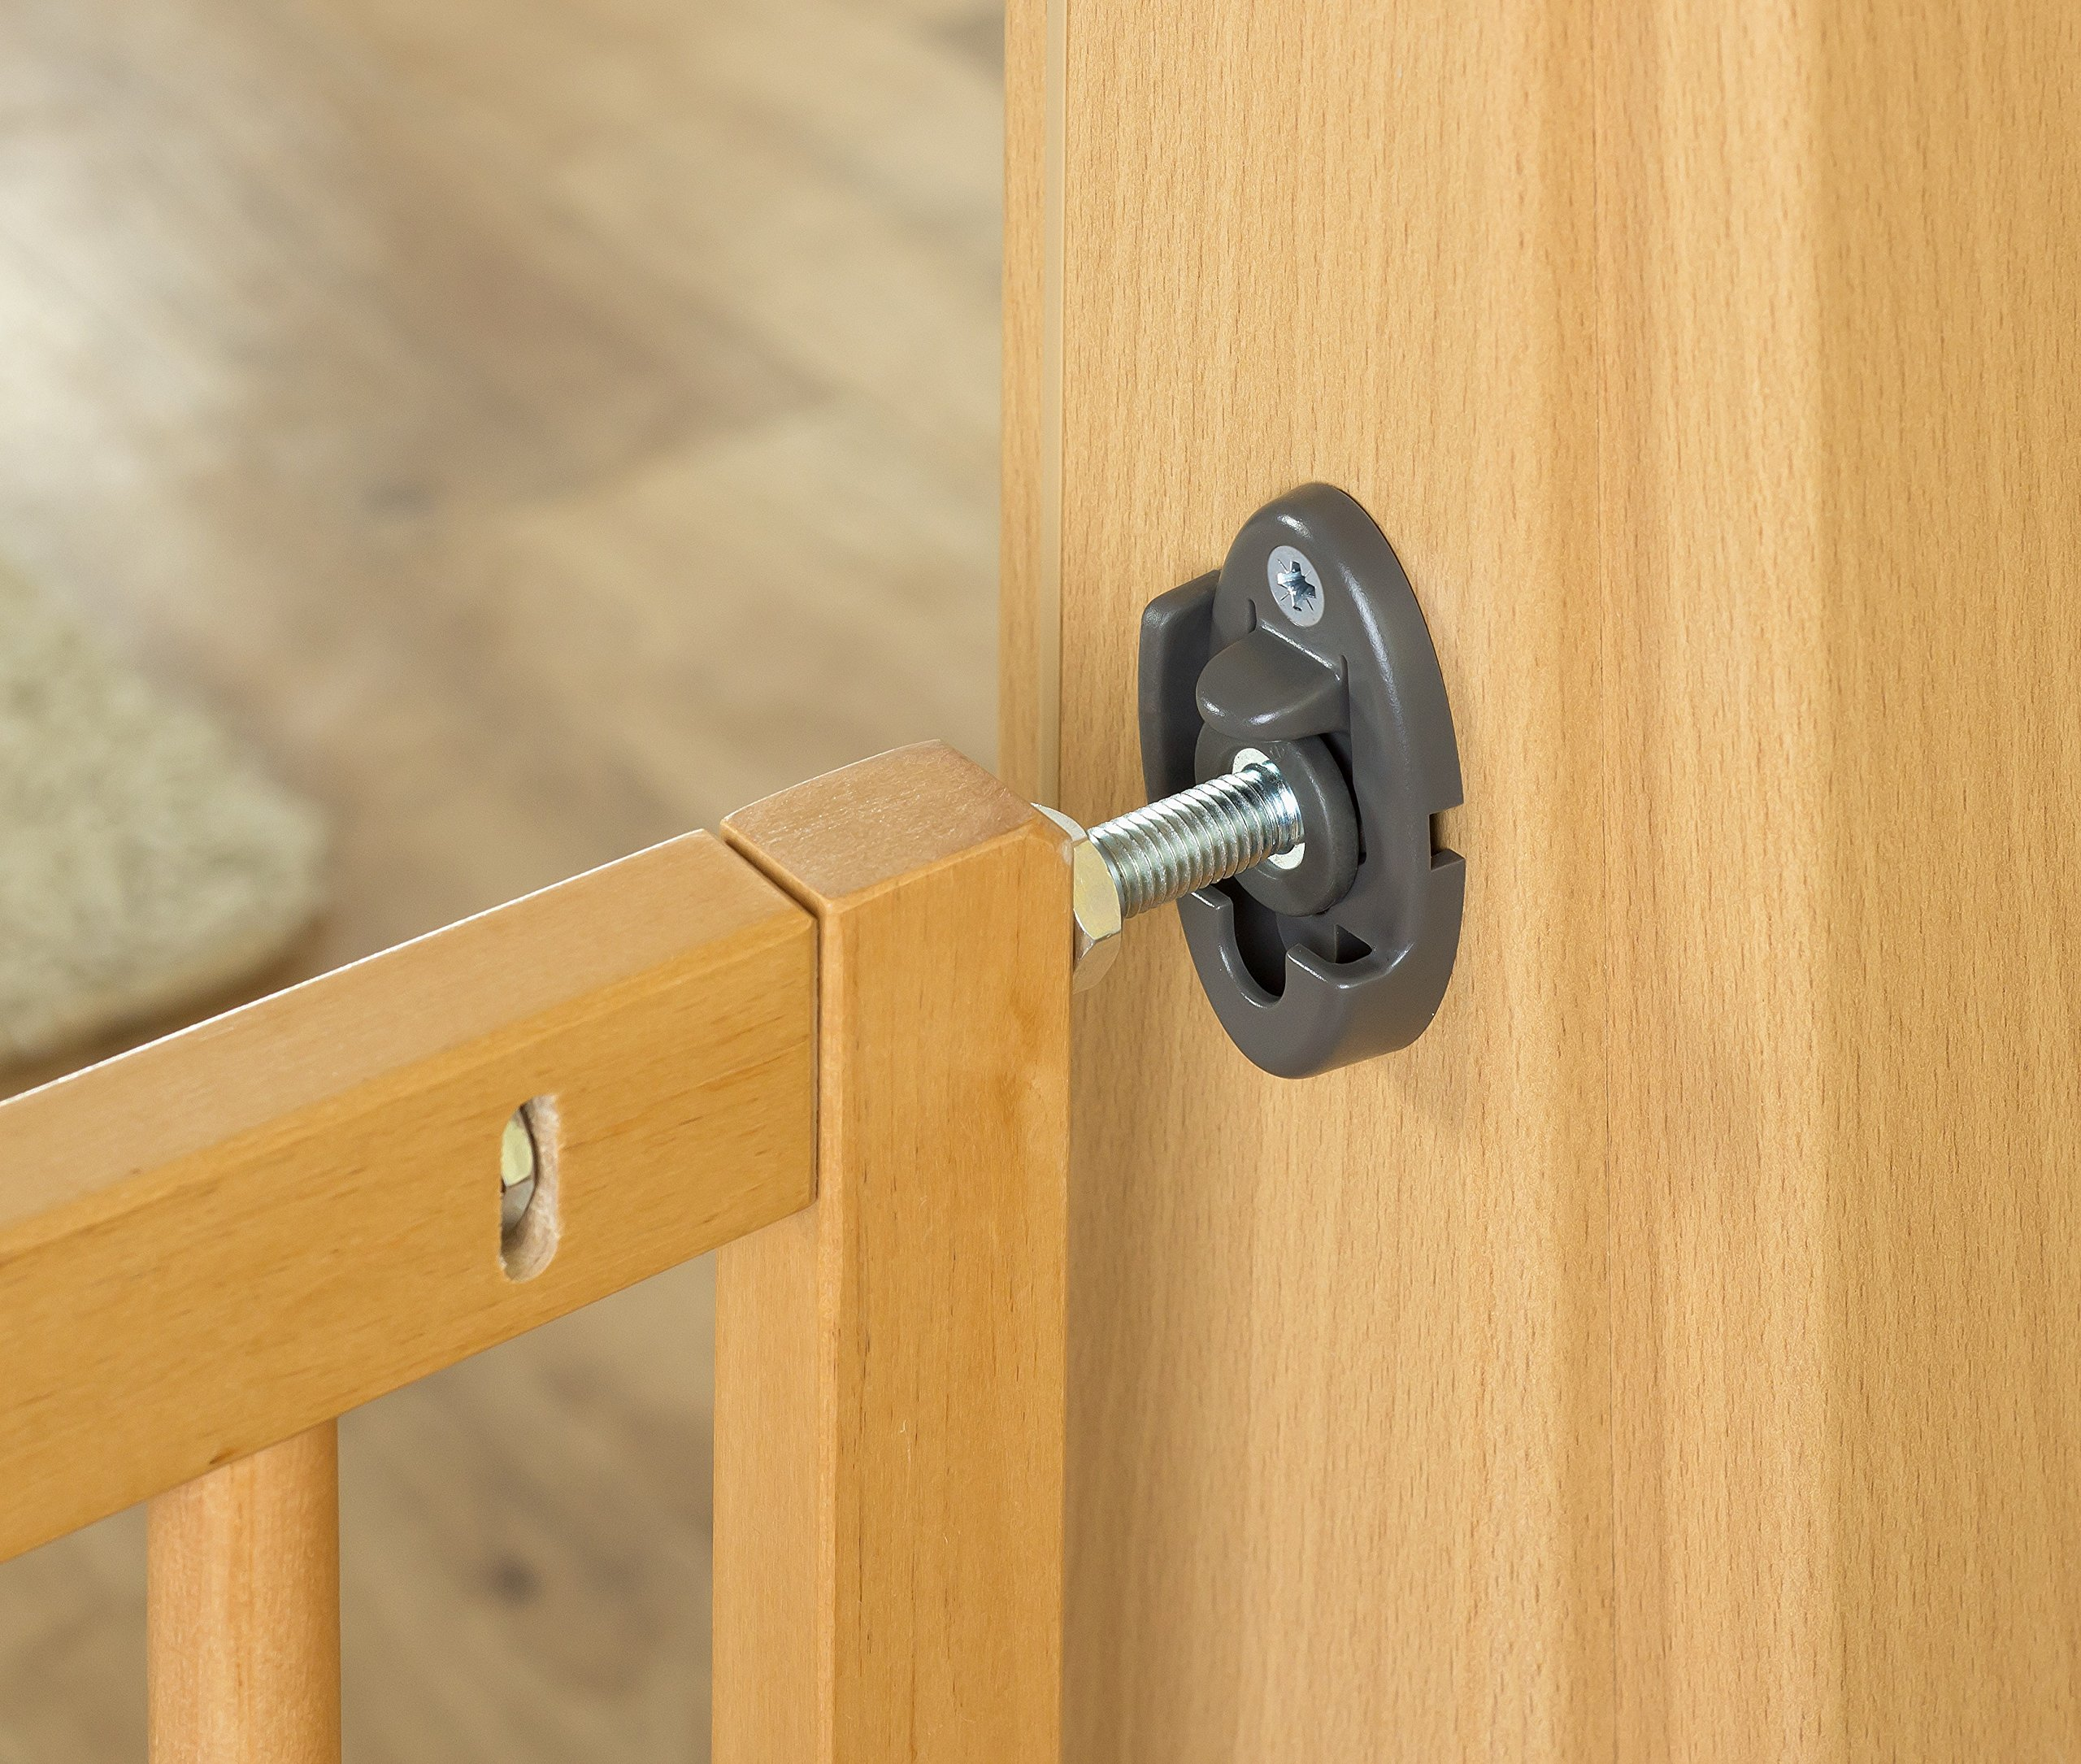 Reer Leon Wooden Stair Gate + Safety Lock 64.5 - 106 cm - Collection 2015 Reer Securing staircases and passageways with steps Stopper for limiting the opening direction Freely adapted by 4-point adjustment 5